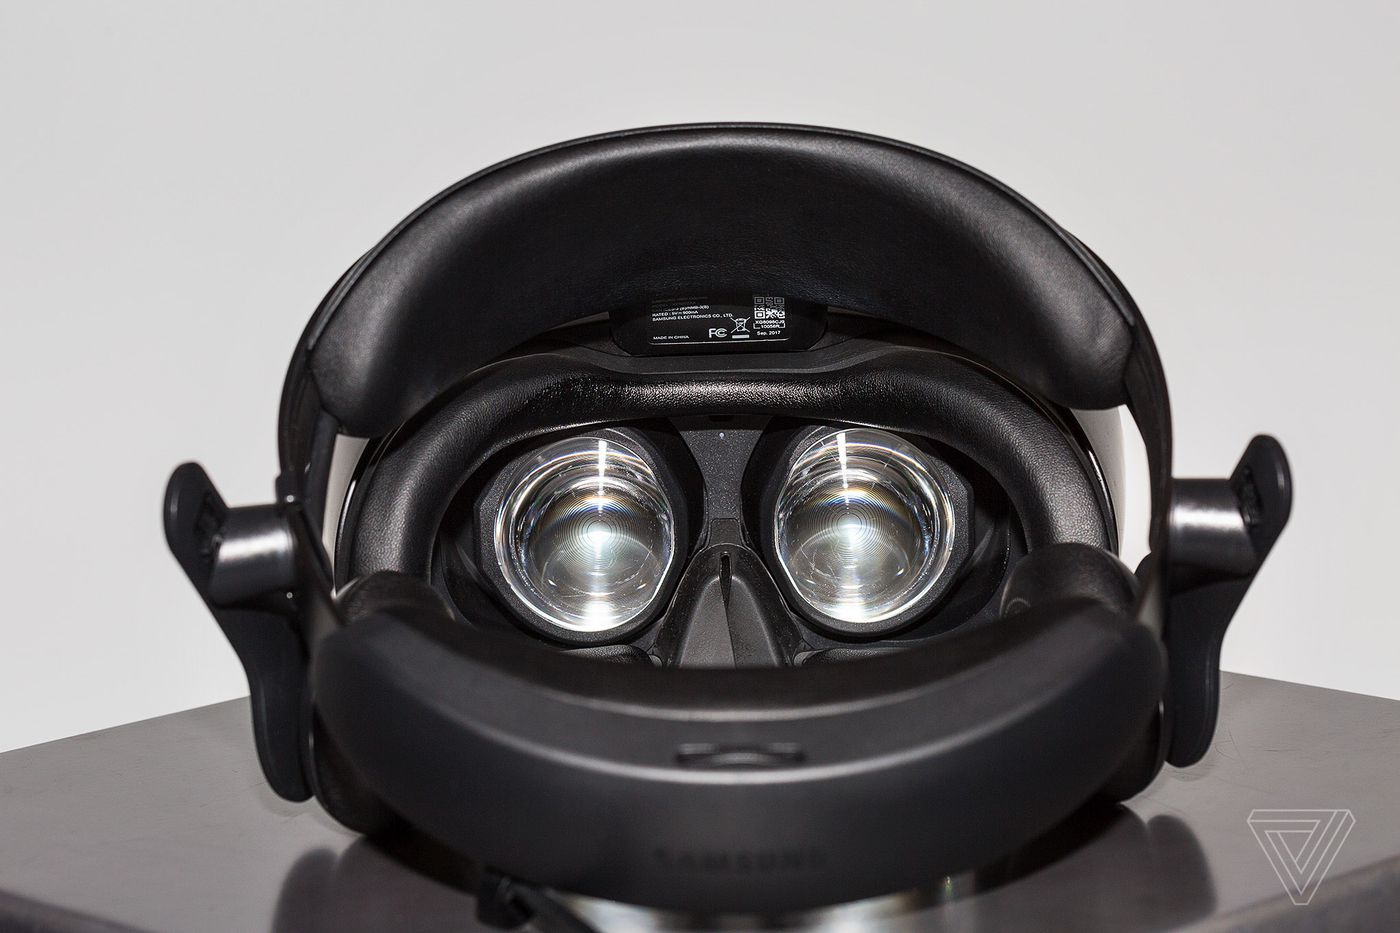 Samsung and Microsoft's Odyssey headset has me excited for VR in